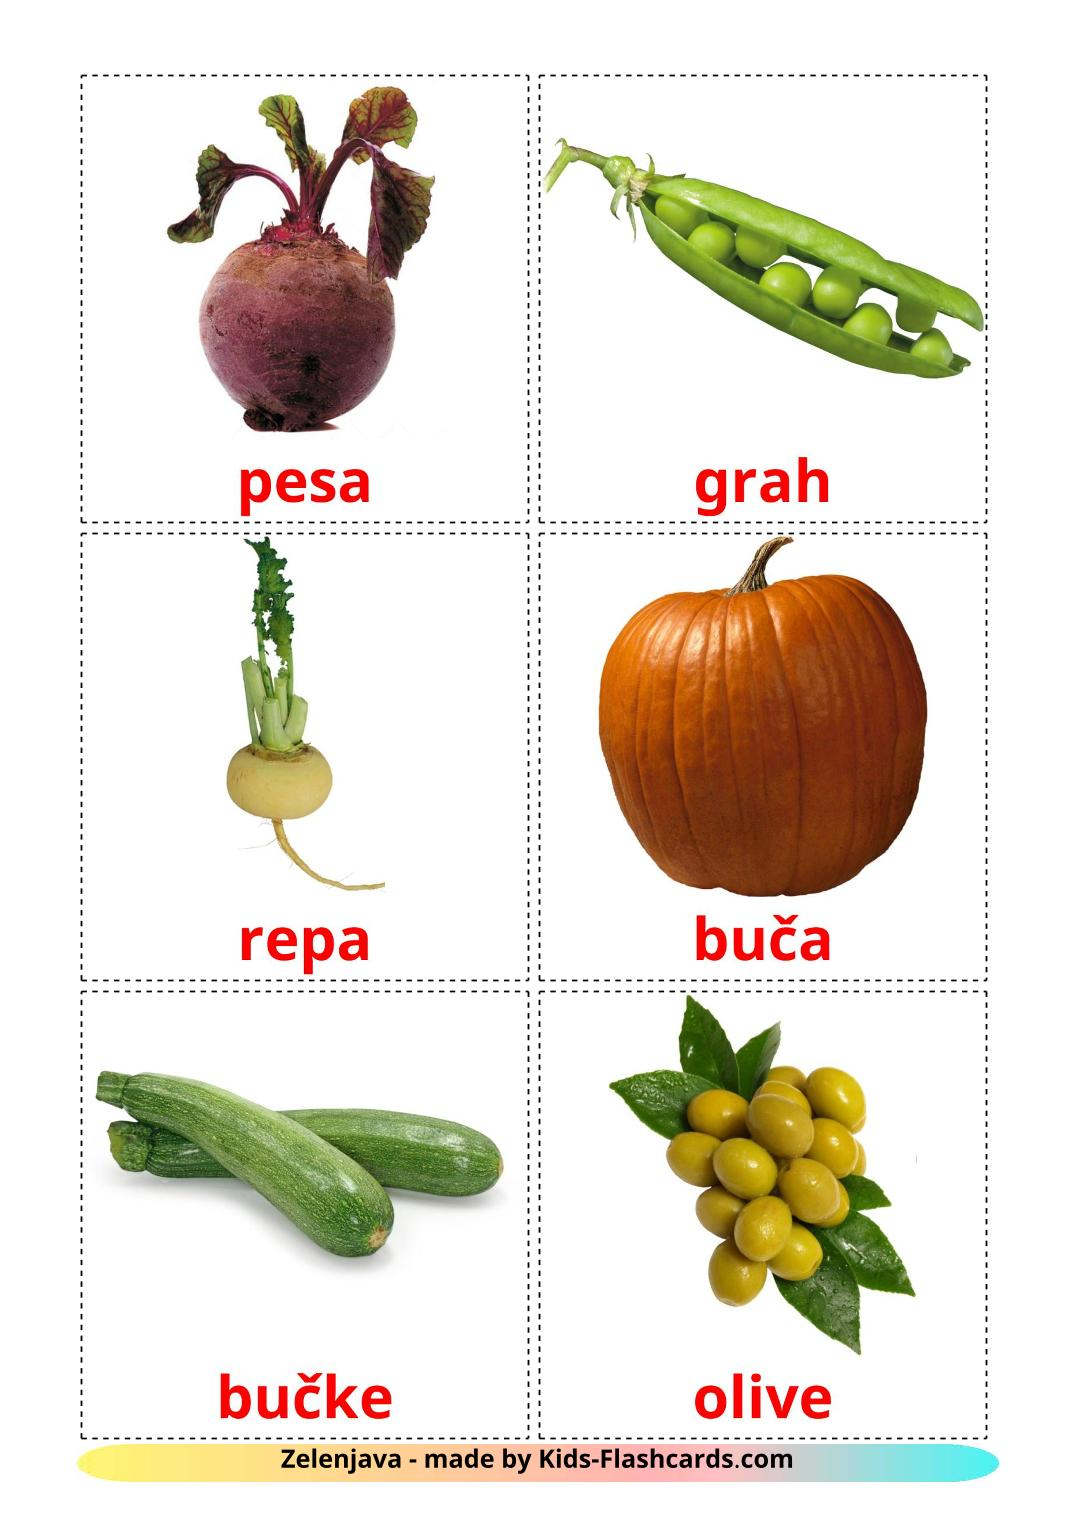 Vegetables - 29 Free Printable slovenian Flashcards